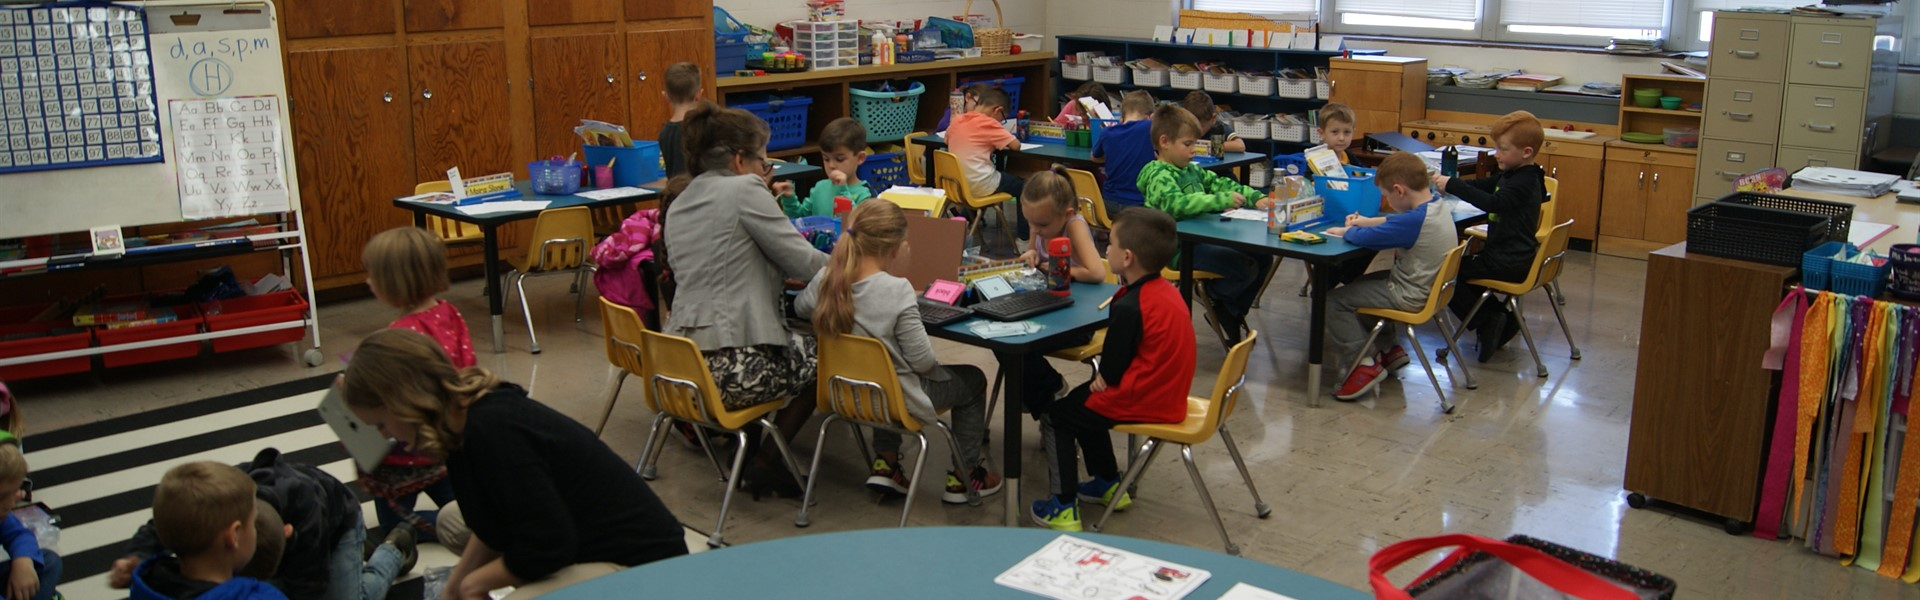 classroom of students and staff working together on reading activities